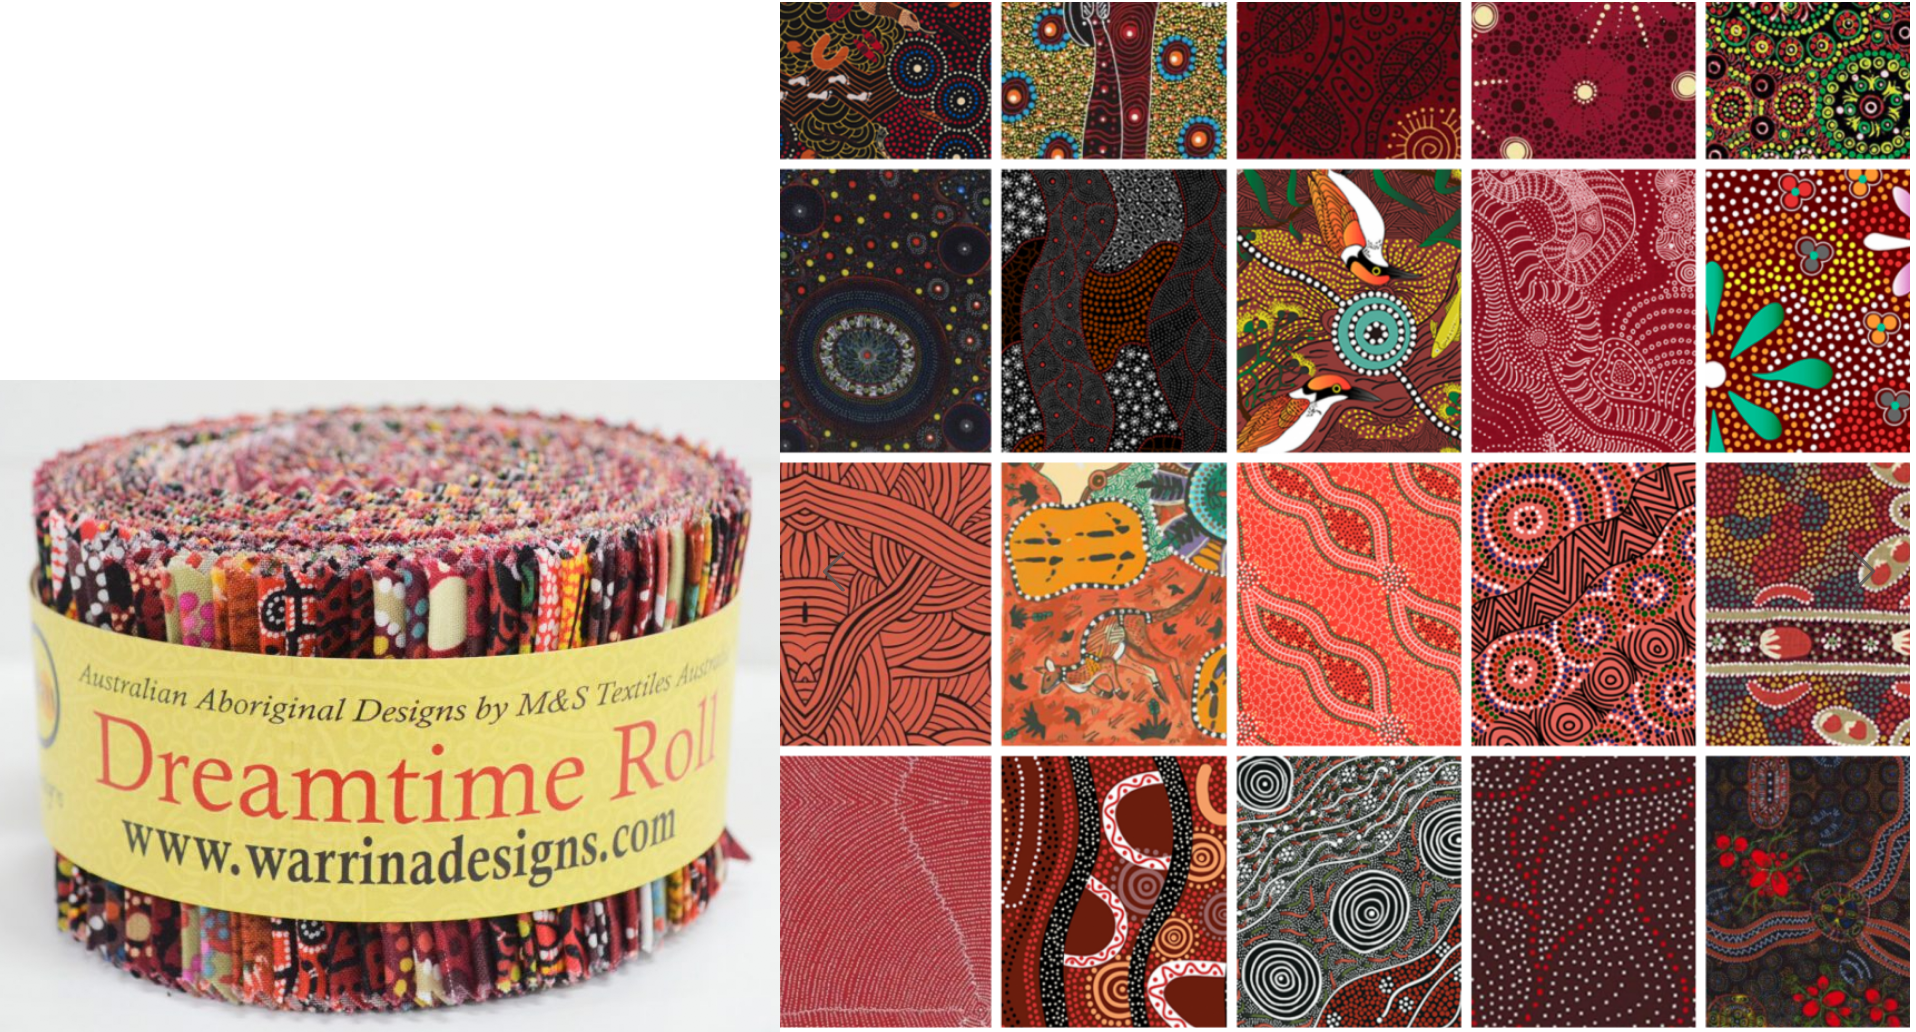 M&S Textiles Dreamtime Roll - Red 40 strips